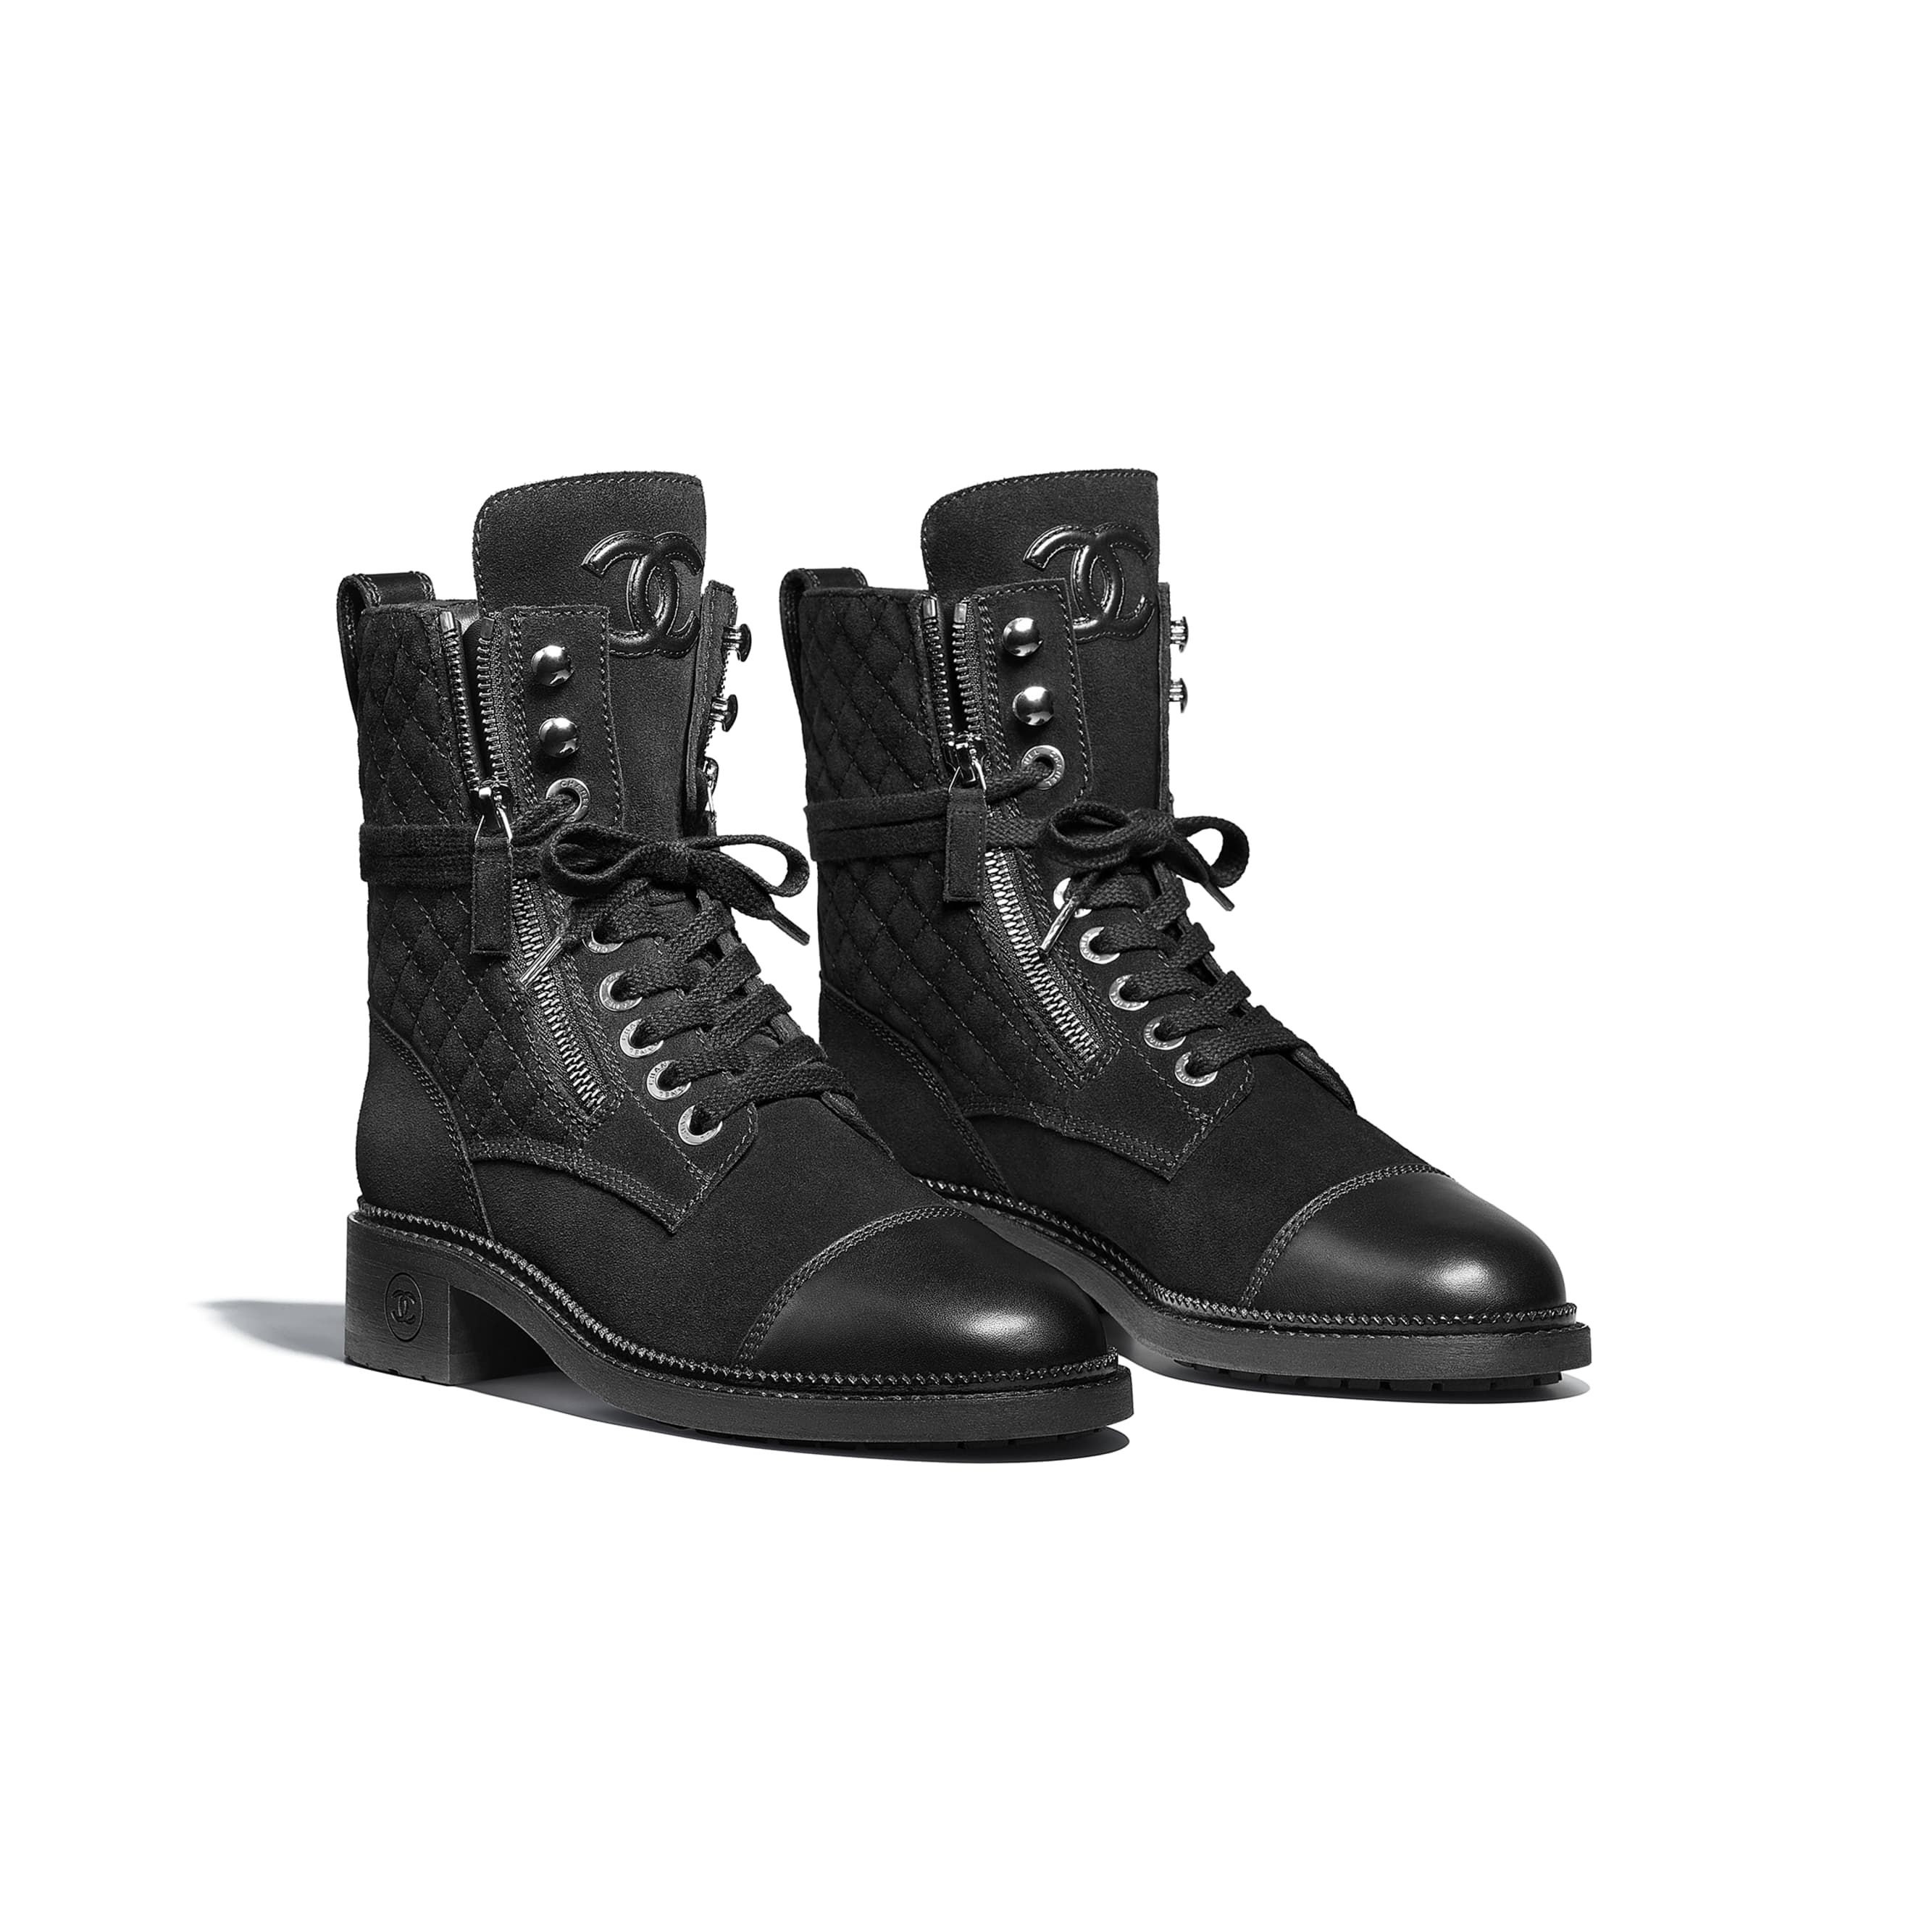 42+ Chanel lace up boots ideas ideas in 2021